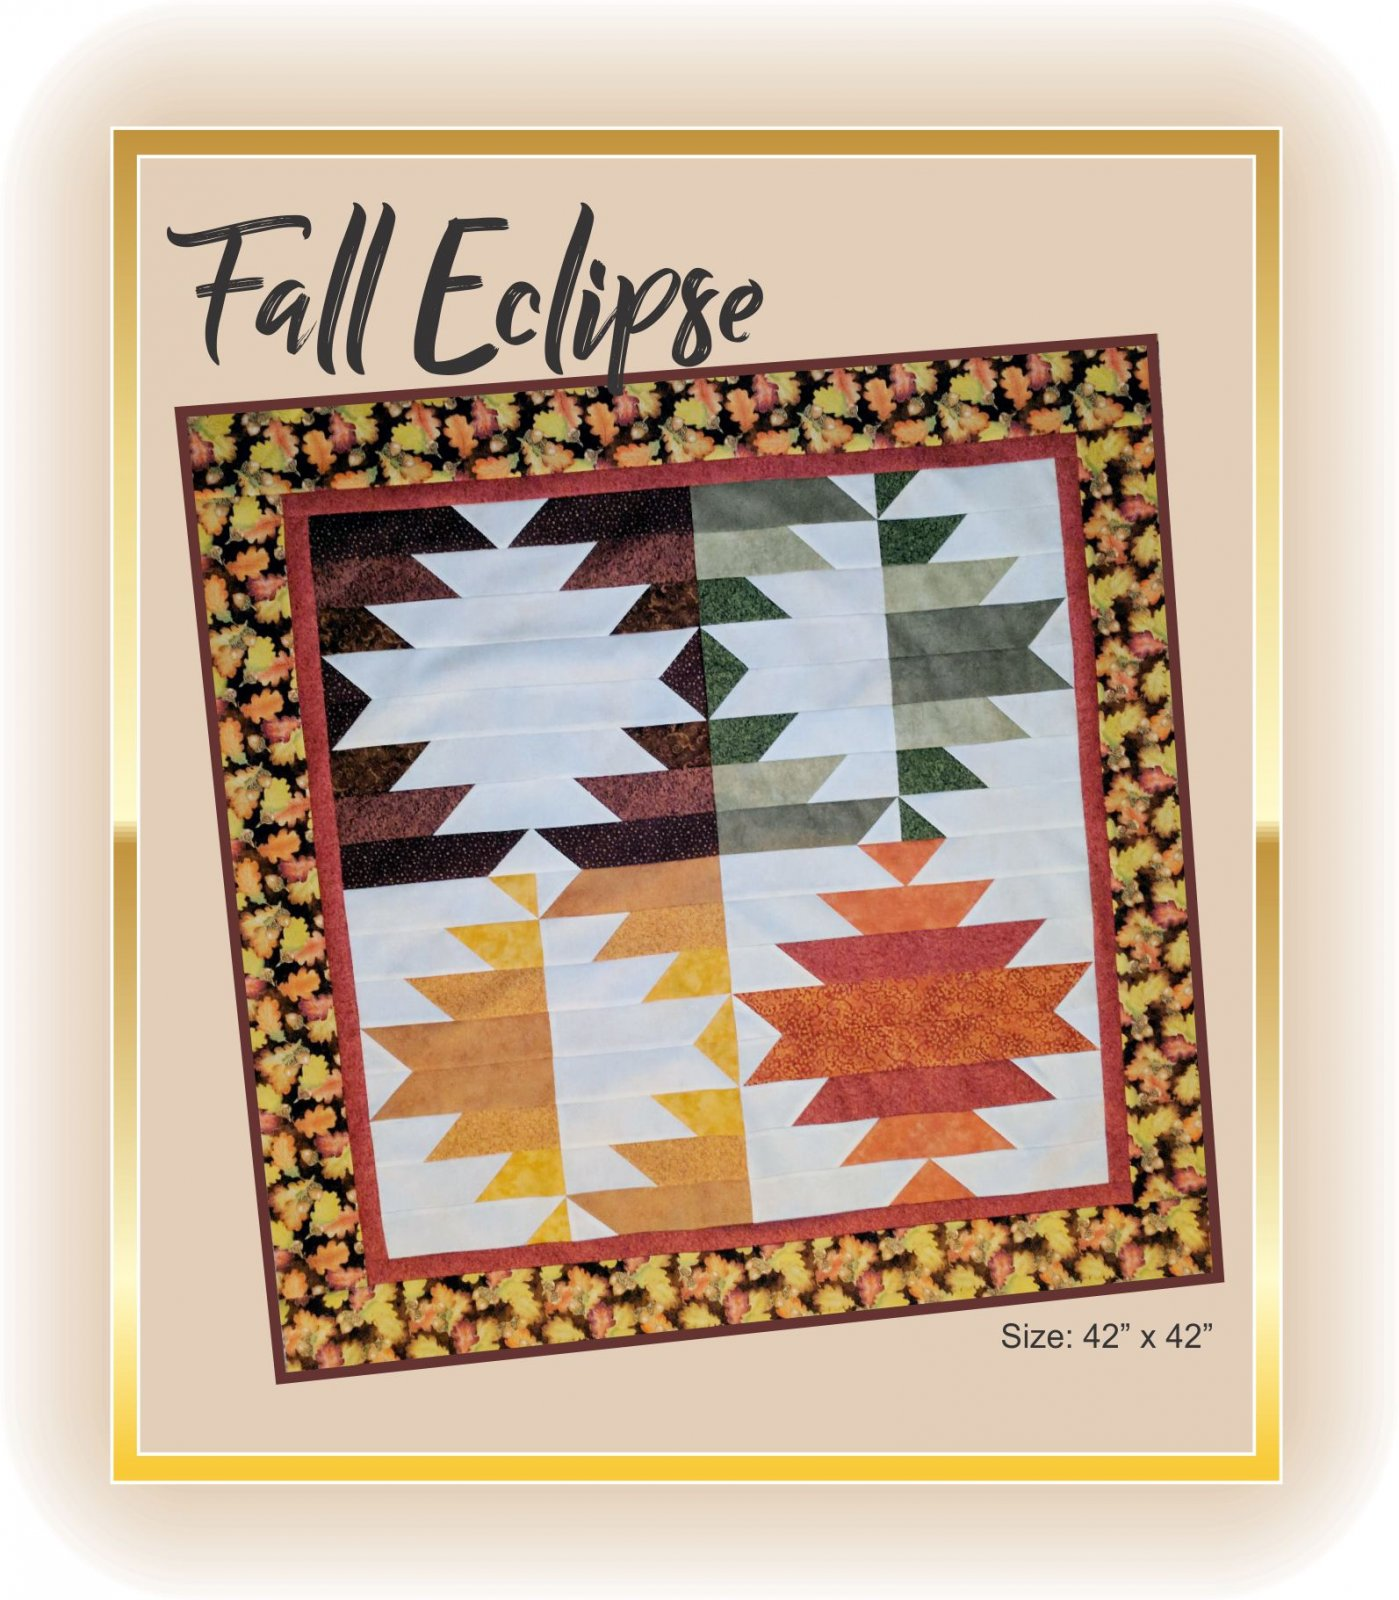 Fall Eclipse Kit